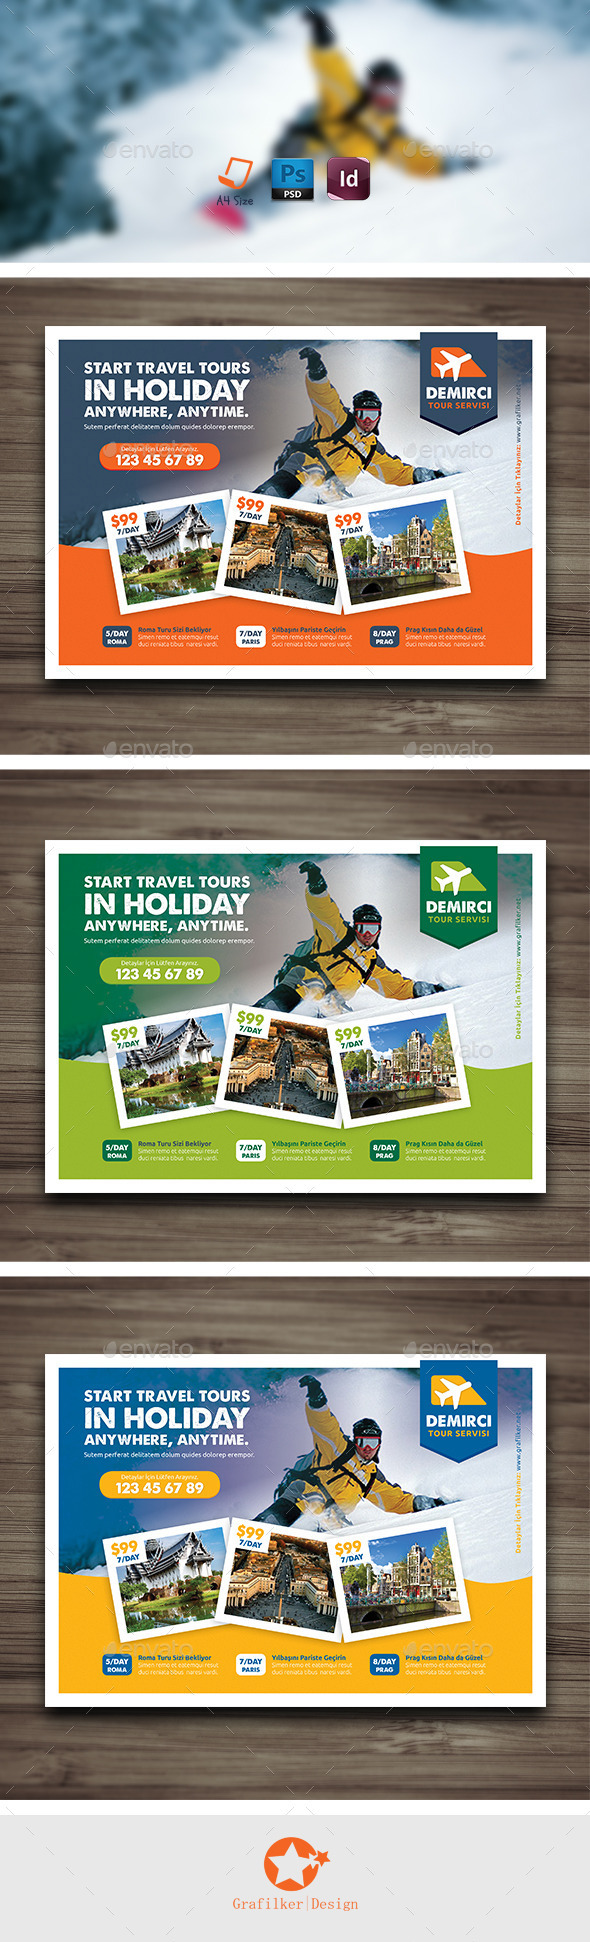 travel tours flyer templates on behance